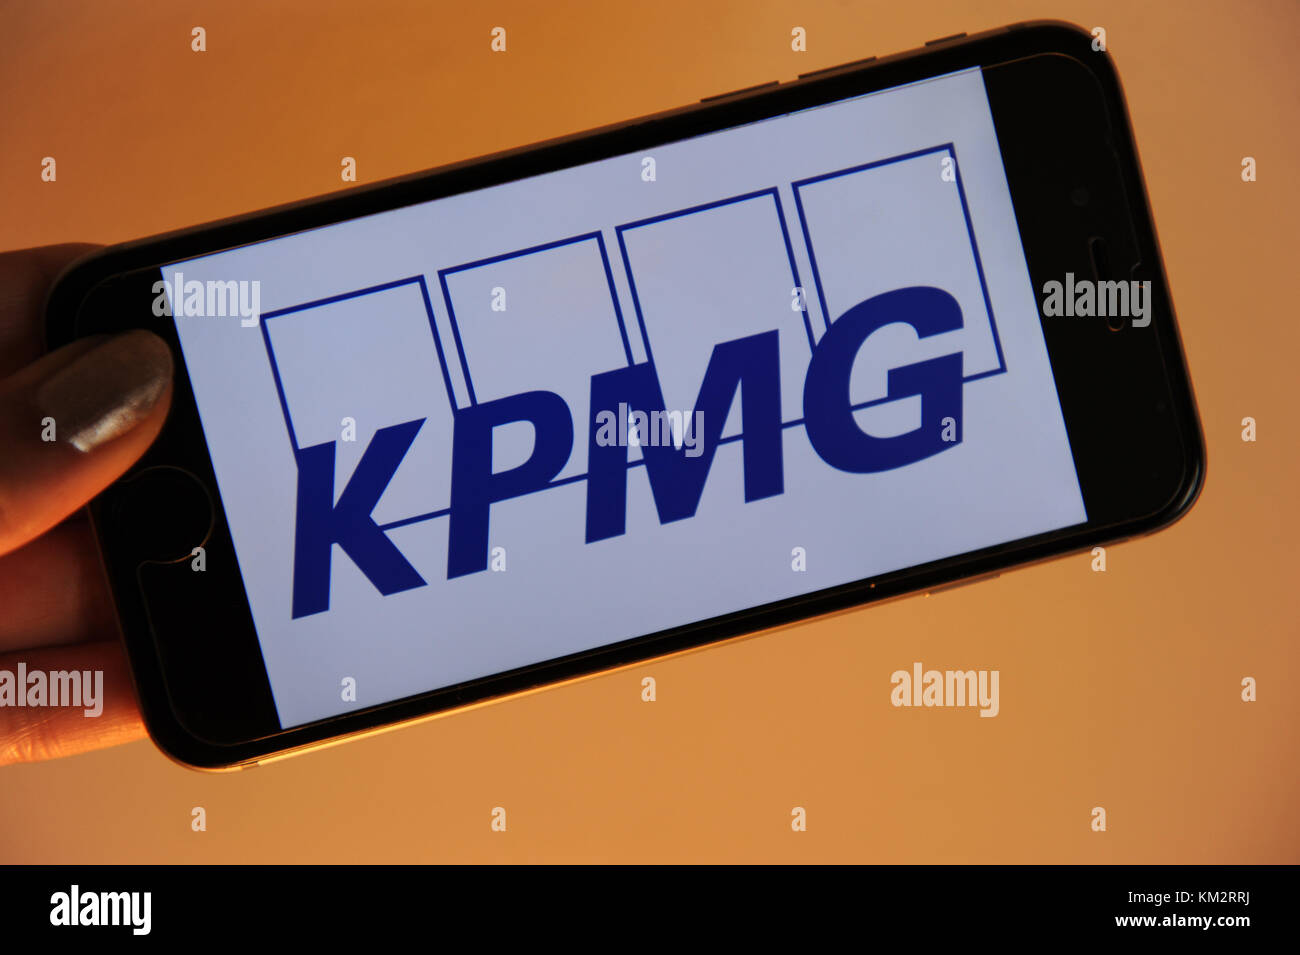 The logo for auditor KPMG on a phone - Stock Image